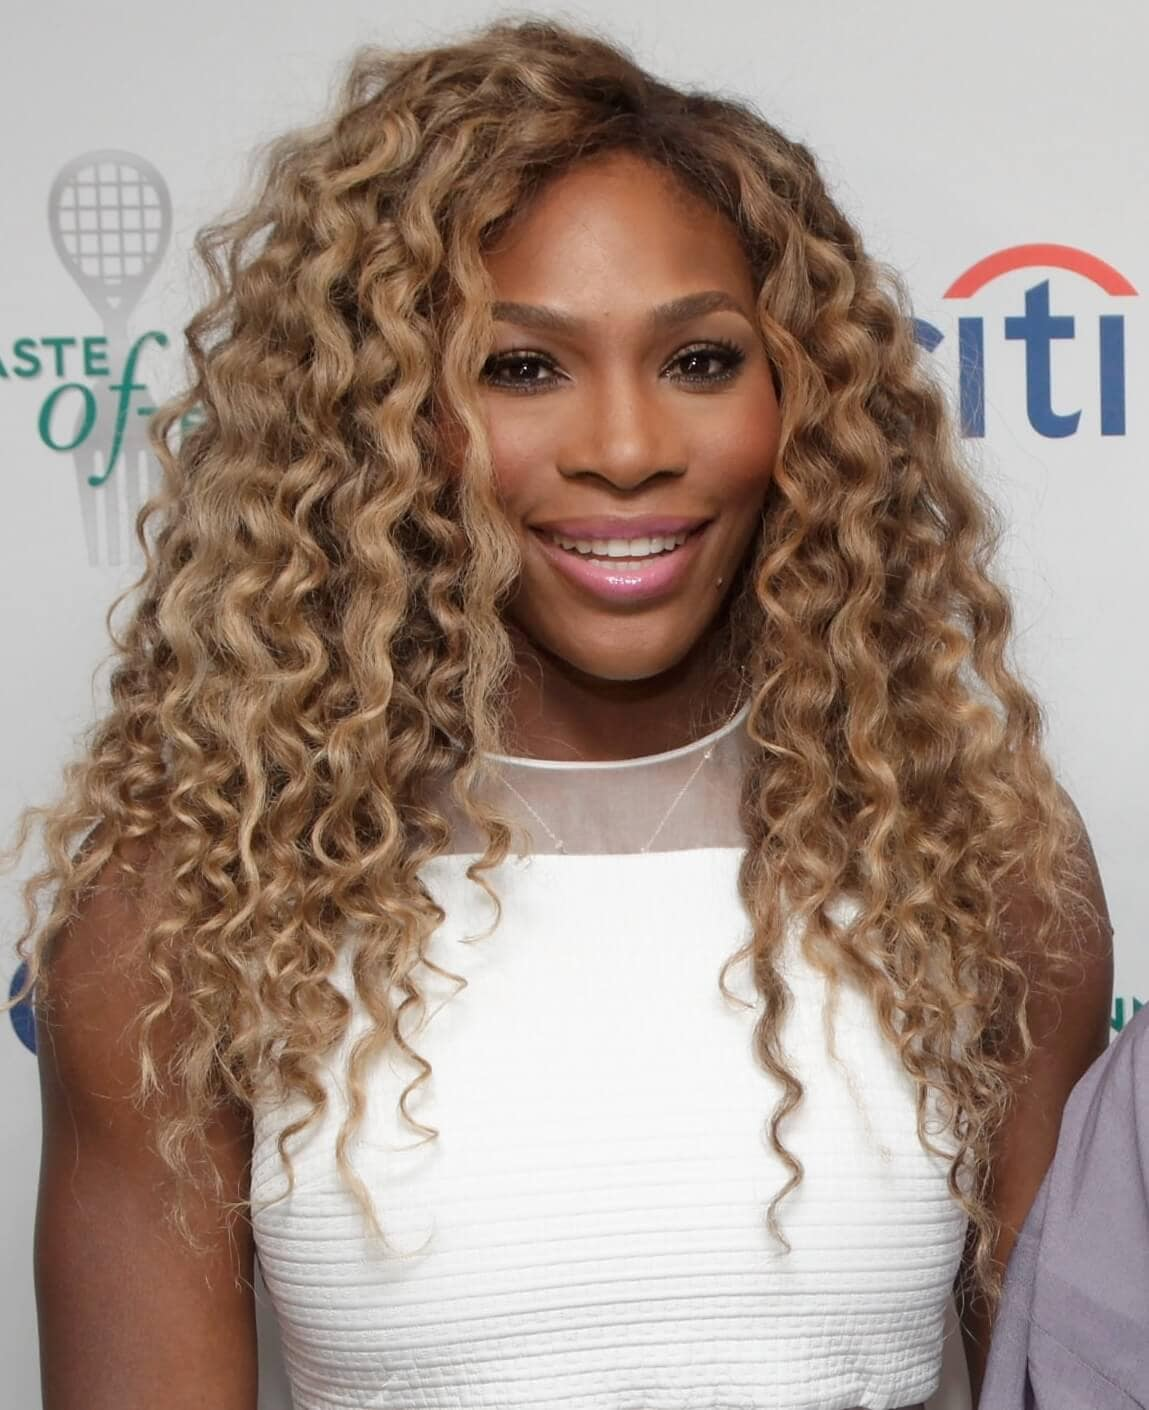 serena Williams blonde twist-out gettyimages